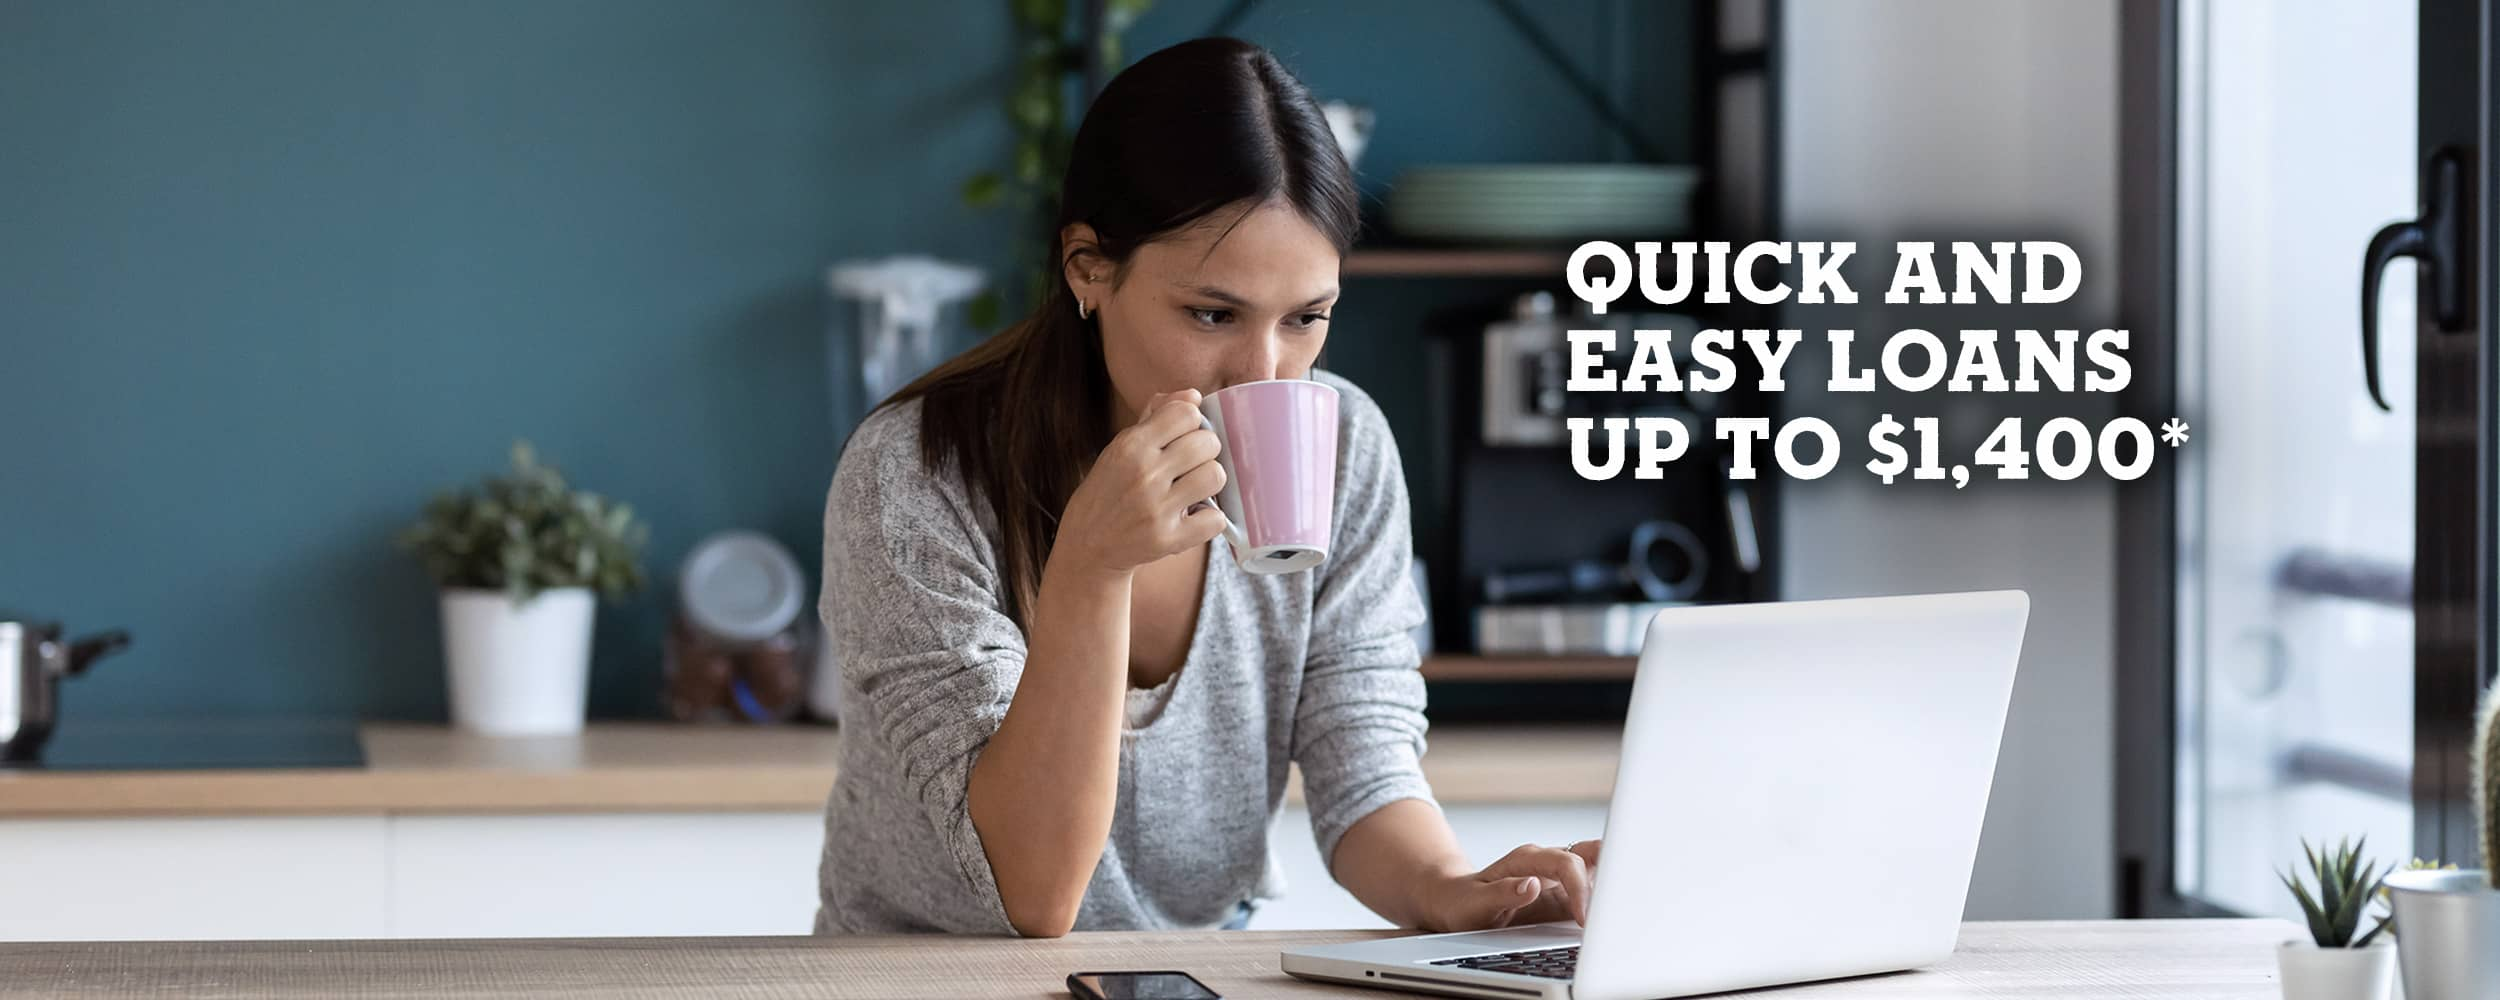 Quick and easy loans up to $1,400*